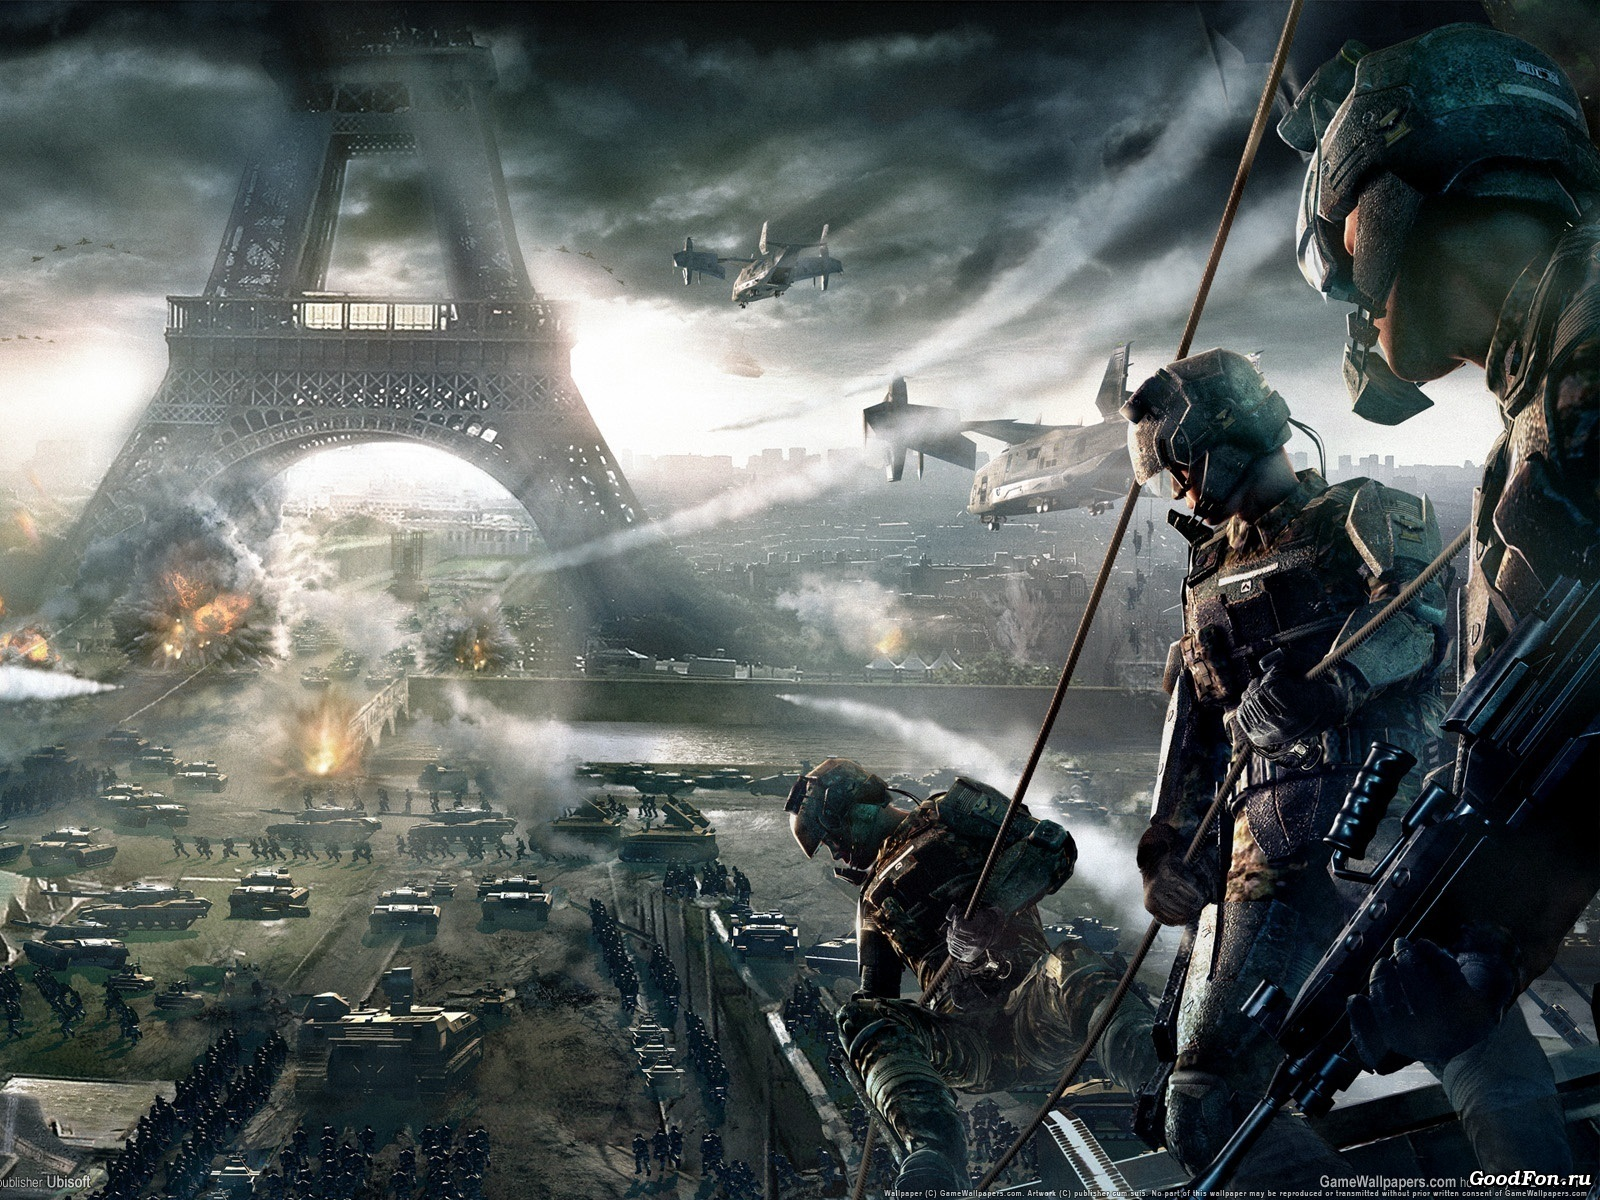 Wallpaper Tom Clancys Endwar at Paris 1920x1200 HD Picture Image 1600x1200